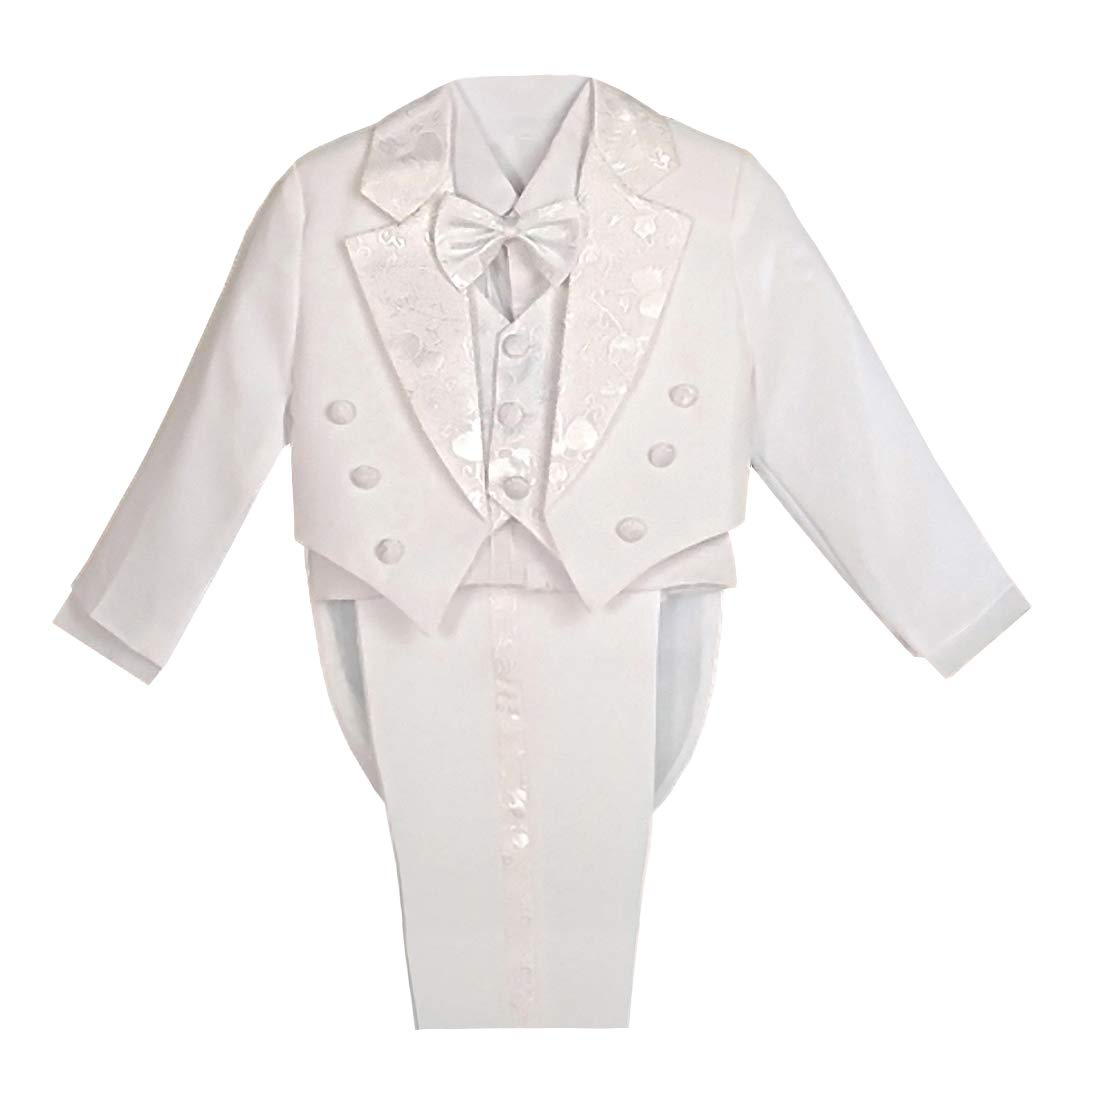 Dressy Daisy Boys Classic Fit Tuxedo Suit with Tail 5 Pcs Set Formal Suits Wedding Outfit 011